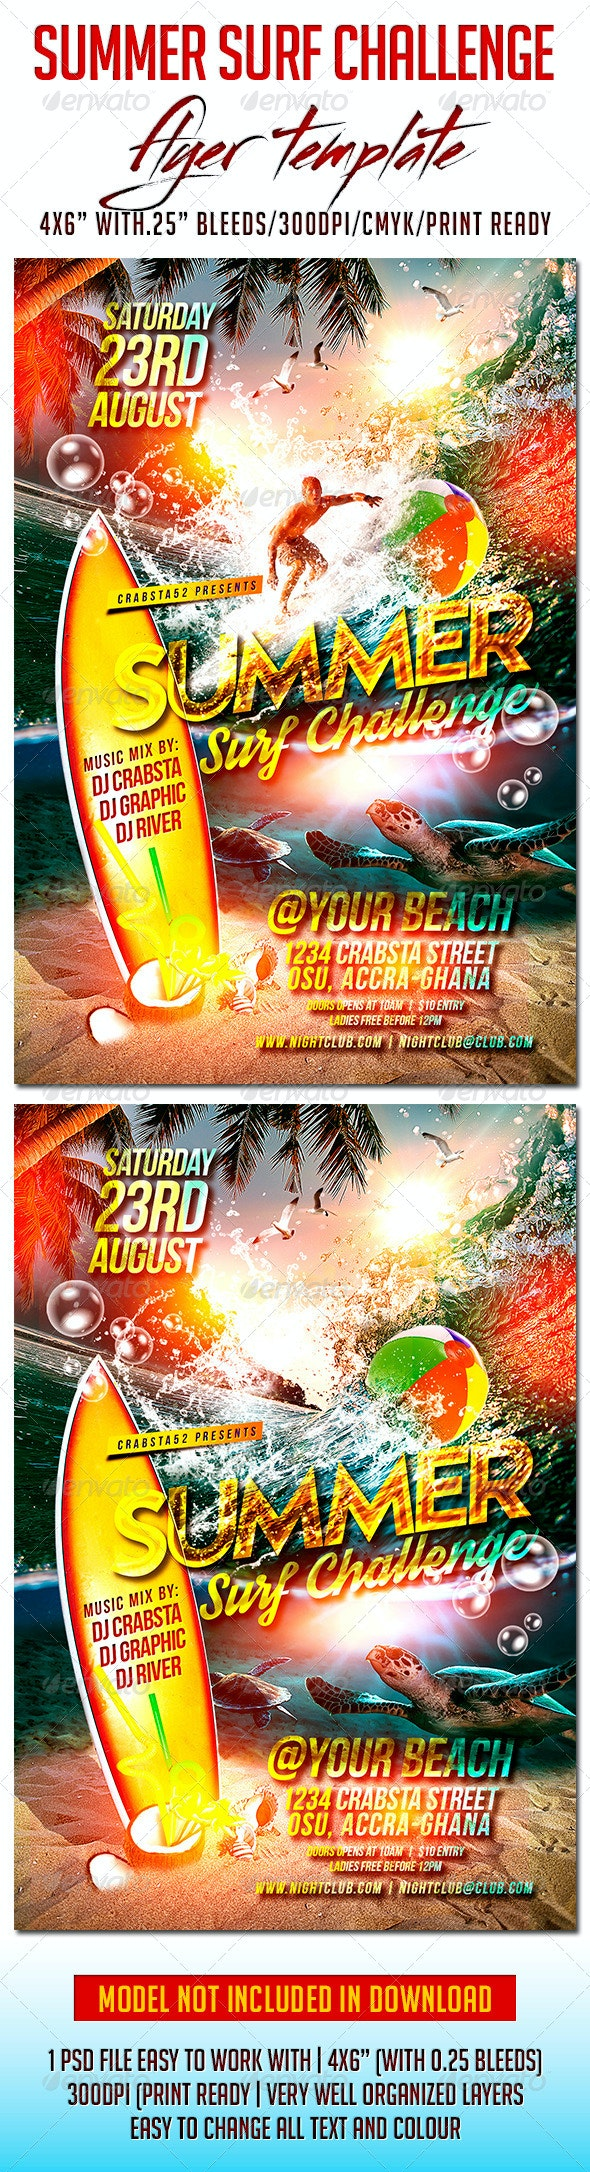 Summer Surf Challenge Flyer Template - Flyers Print Templates